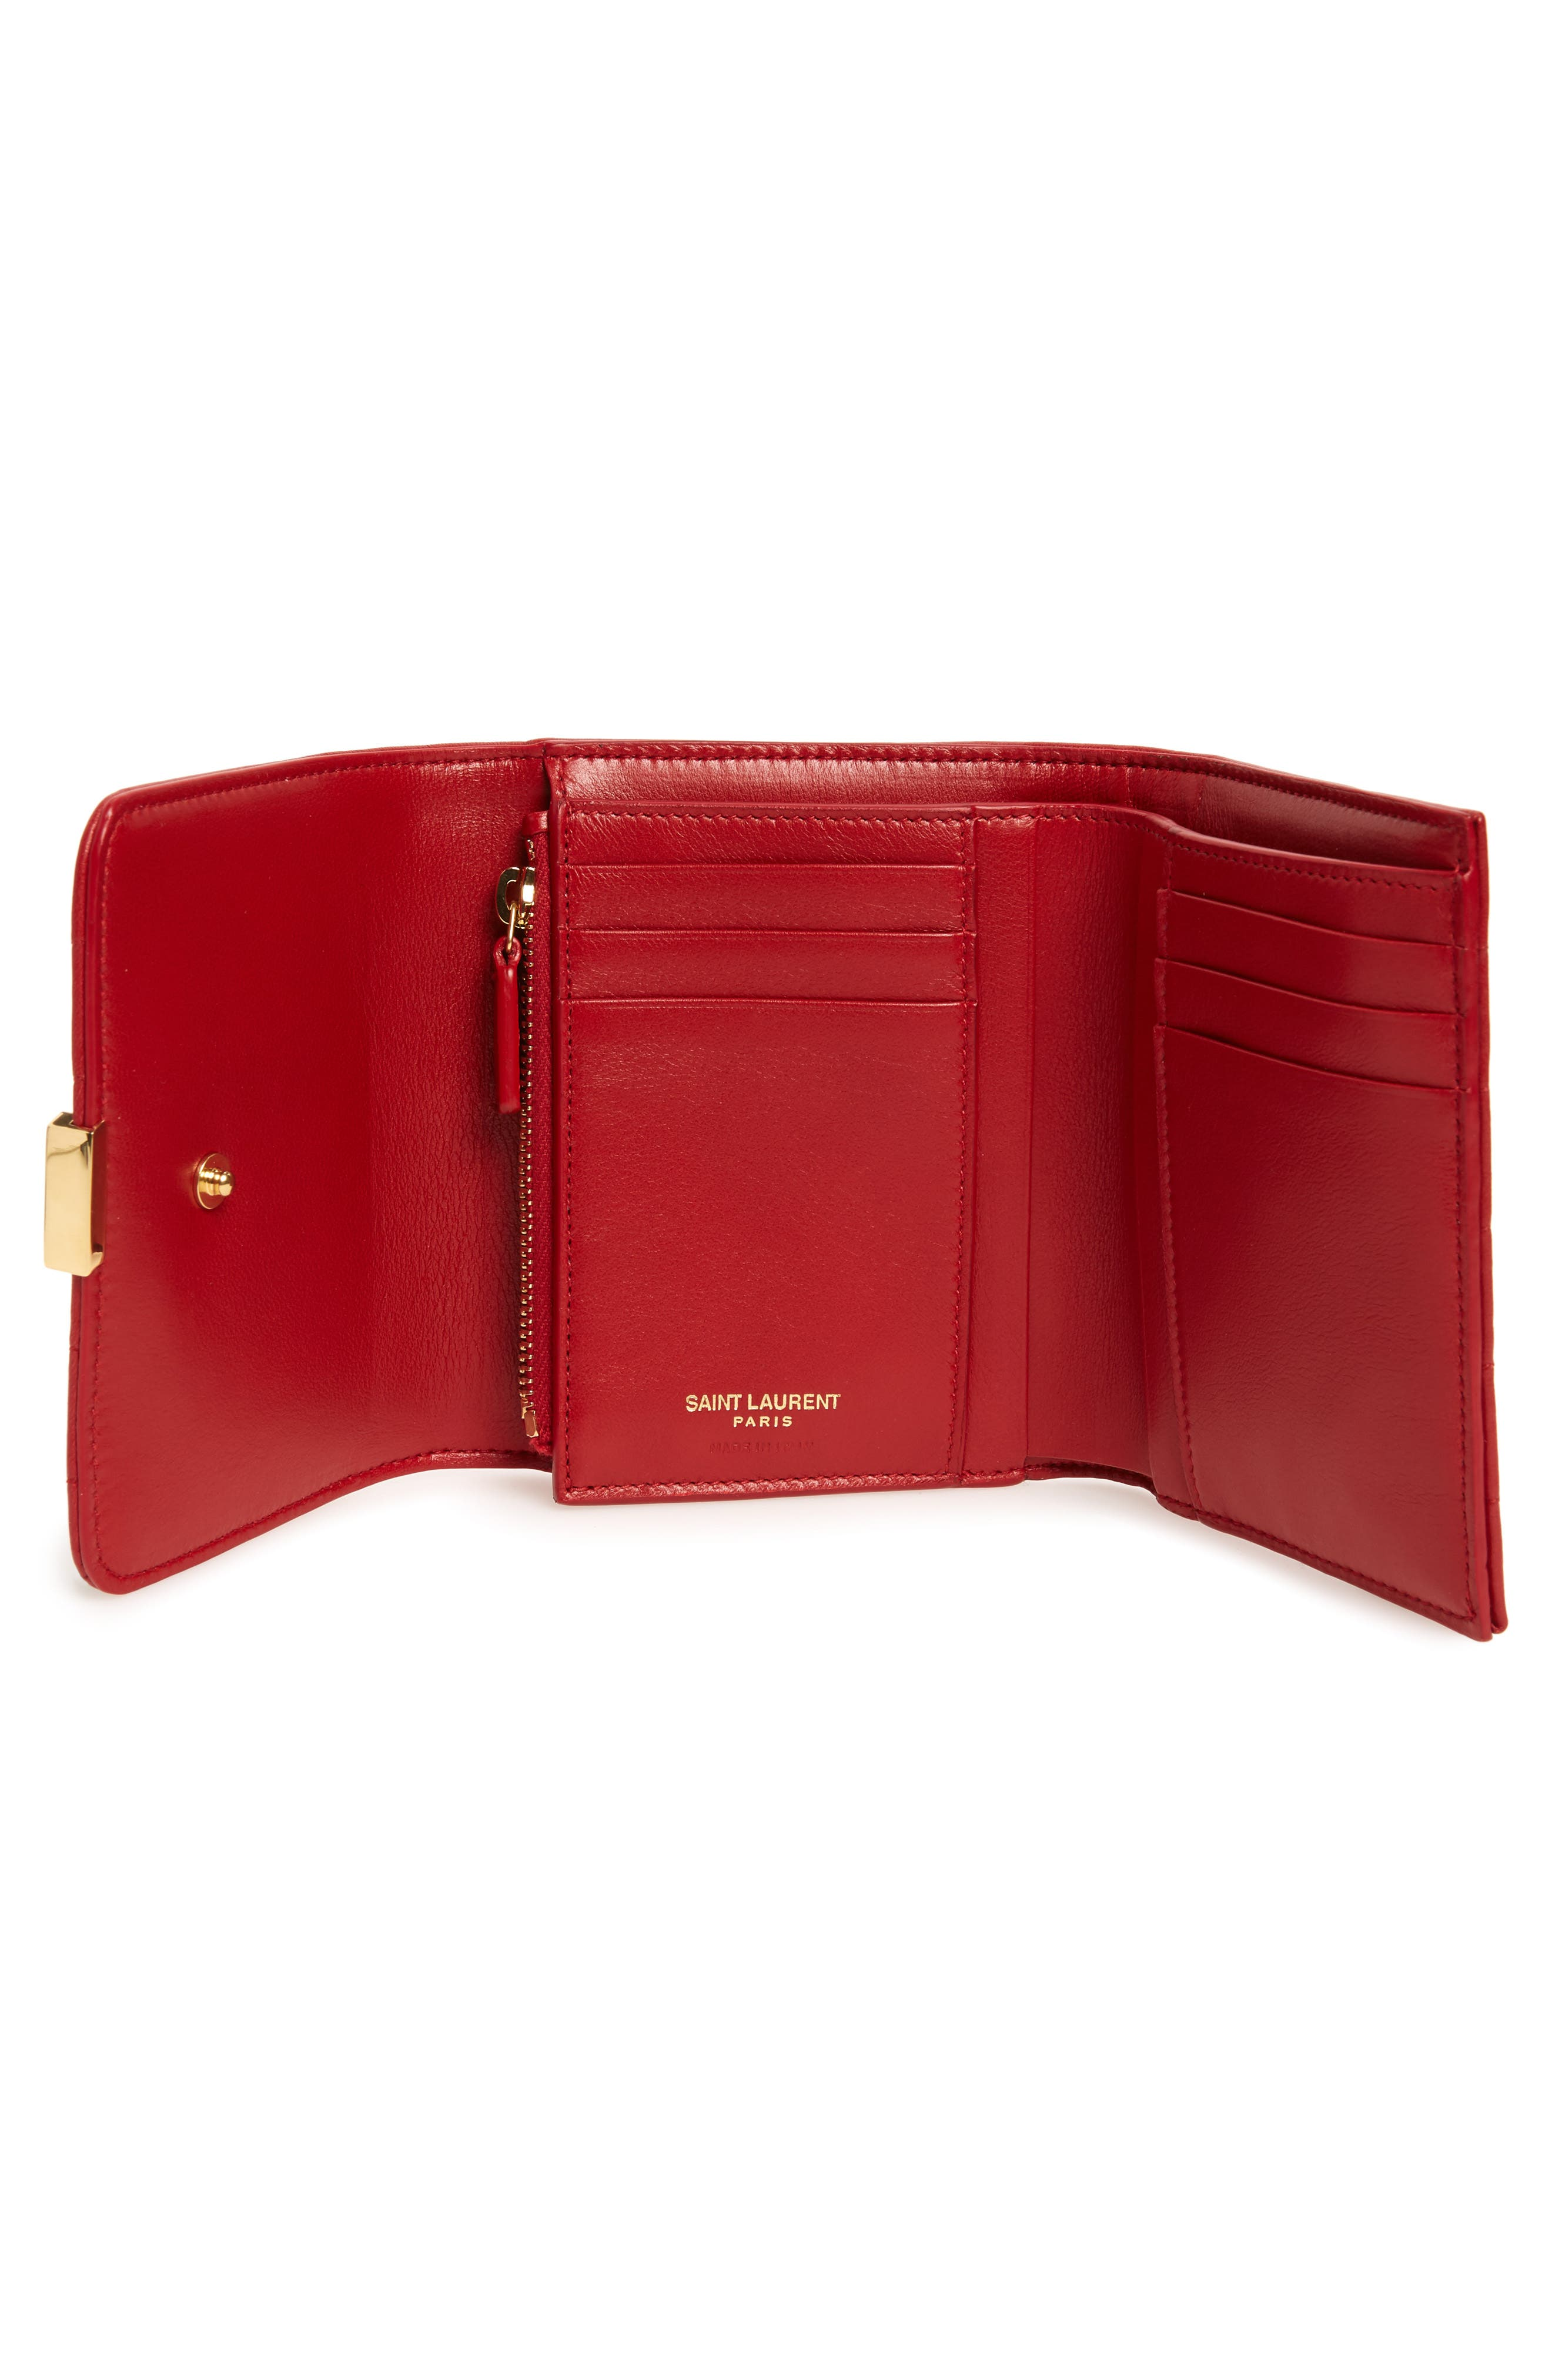 Vicky Lambskin Leather Trifold Wallet,                             Alternate thumbnail 2, color,                             ROUGE EROS